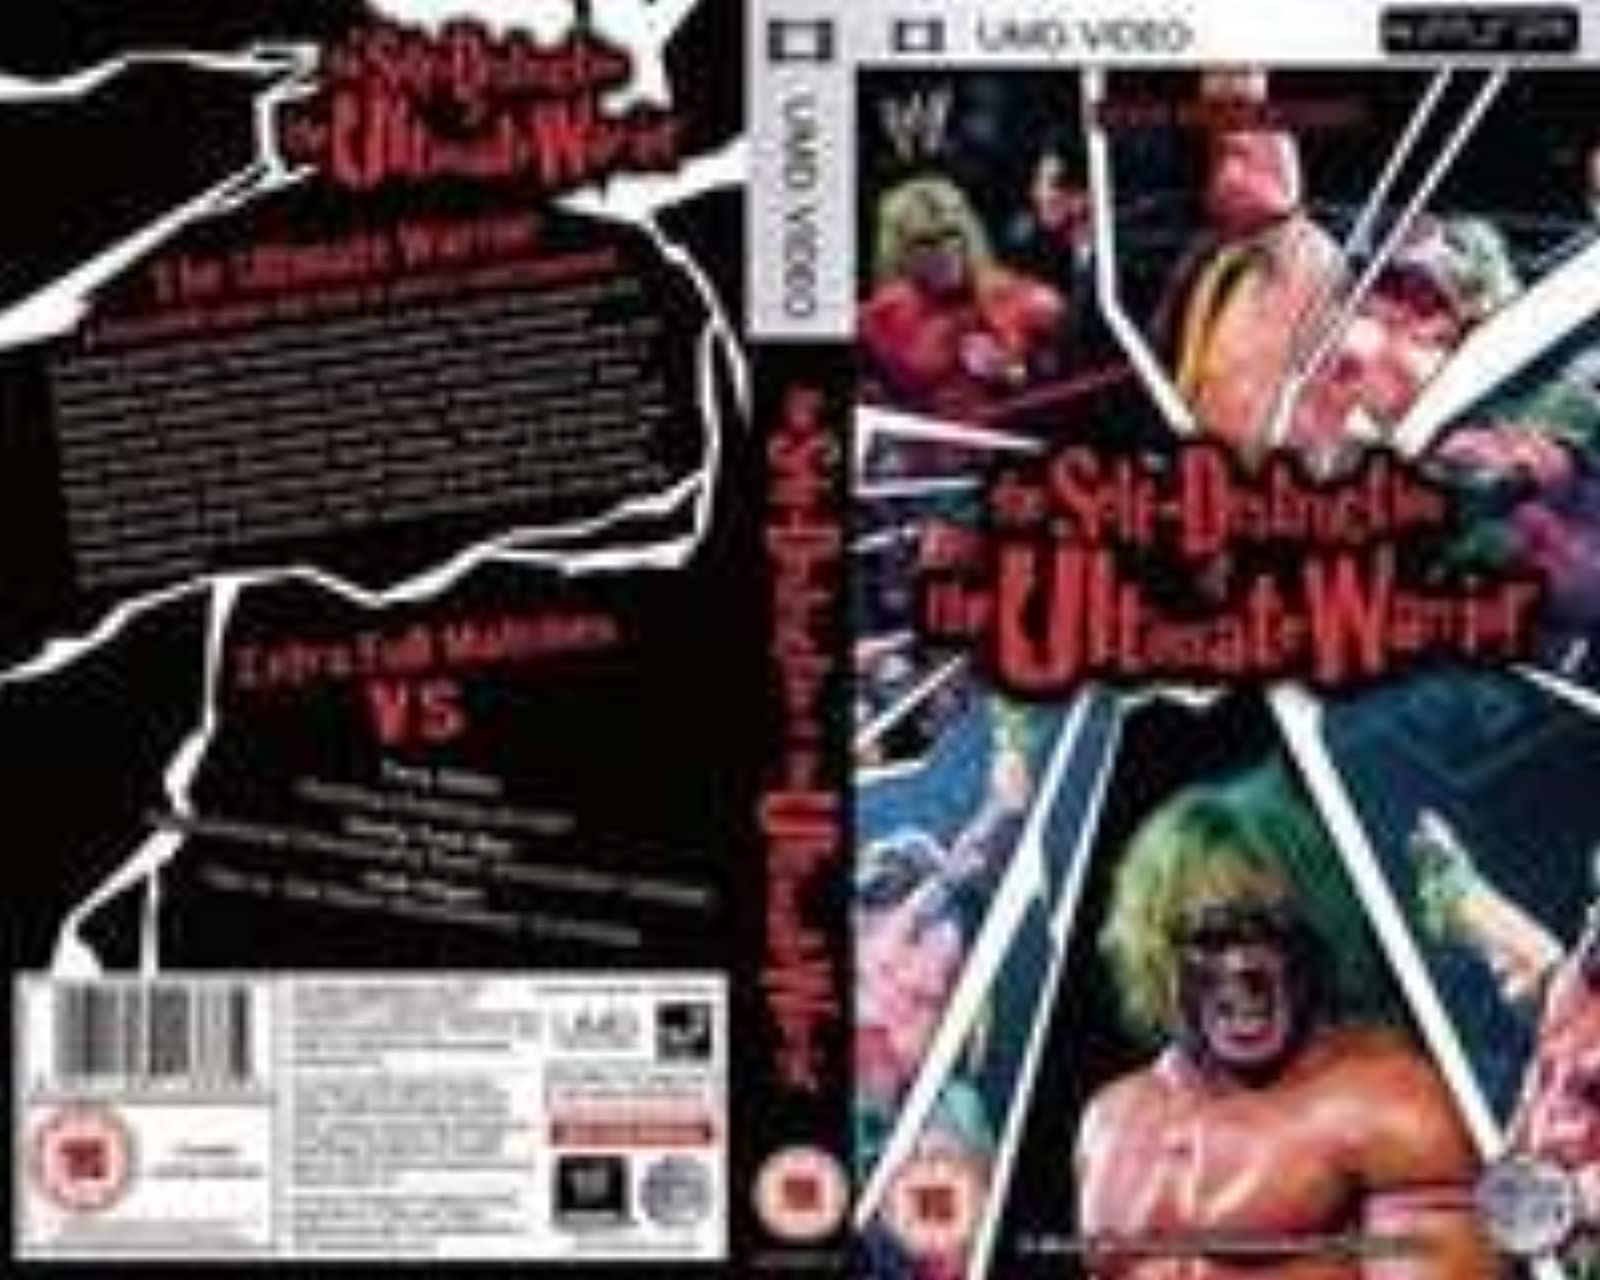 Wrestling Entertainment Ultimate Warrior Self Destruction